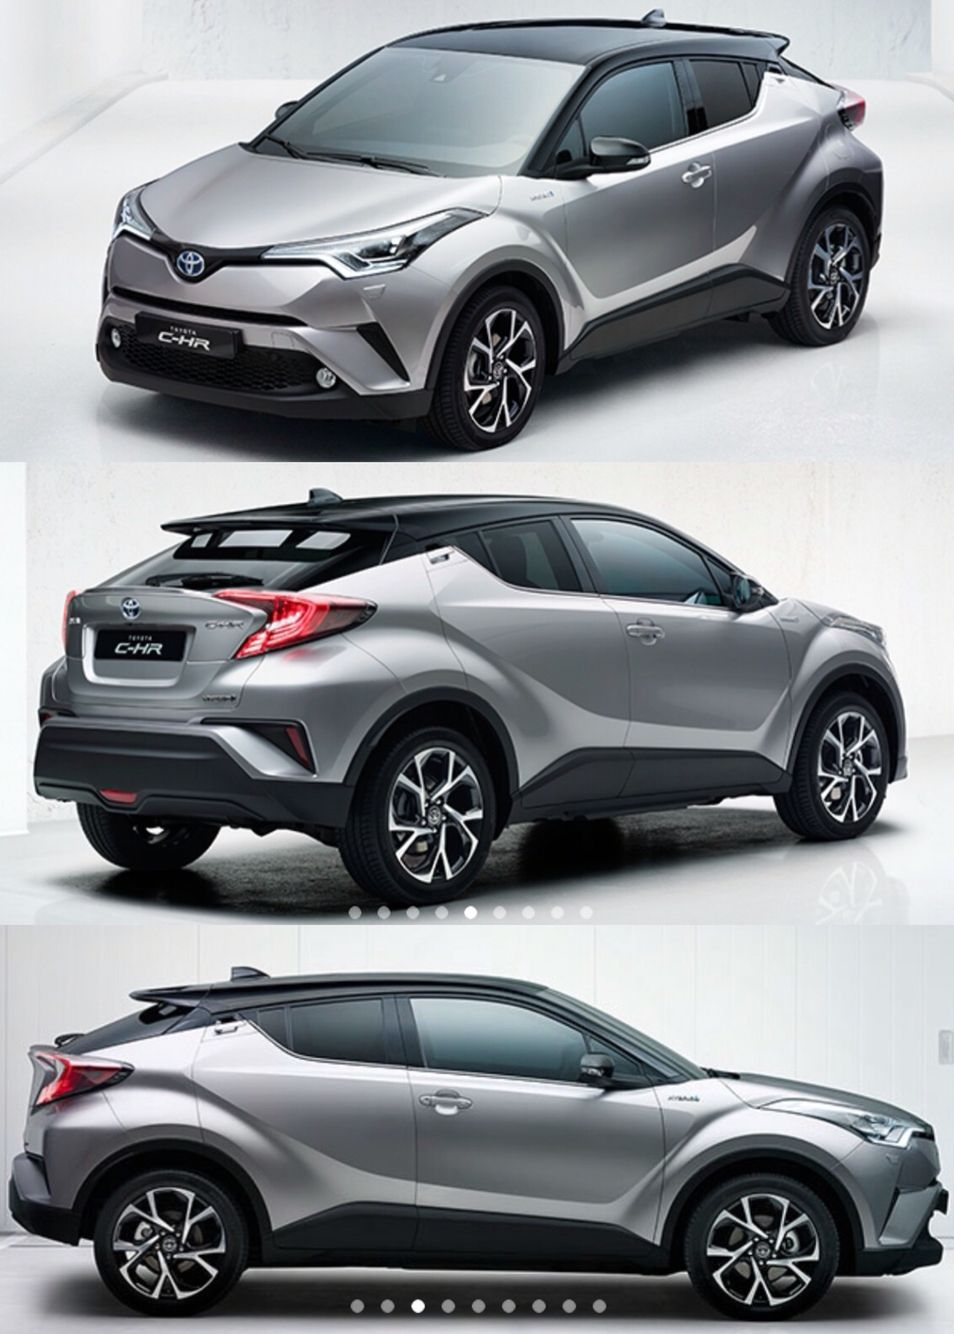 100 toyota chr interior 2018 toyota chr production new toyota pinterest toyota 2017. Black Bedroom Furniture Sets. Home Design Ideas